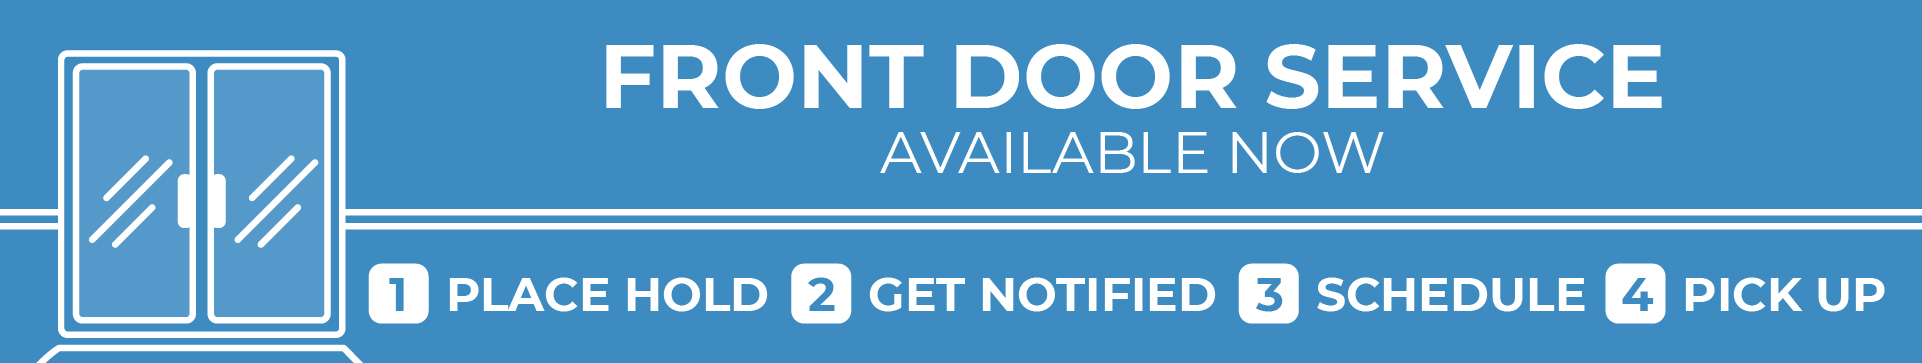 Front Door Service available now: 1. Place hold - 2. Get notified - 3. Schedule - 4. Pick up